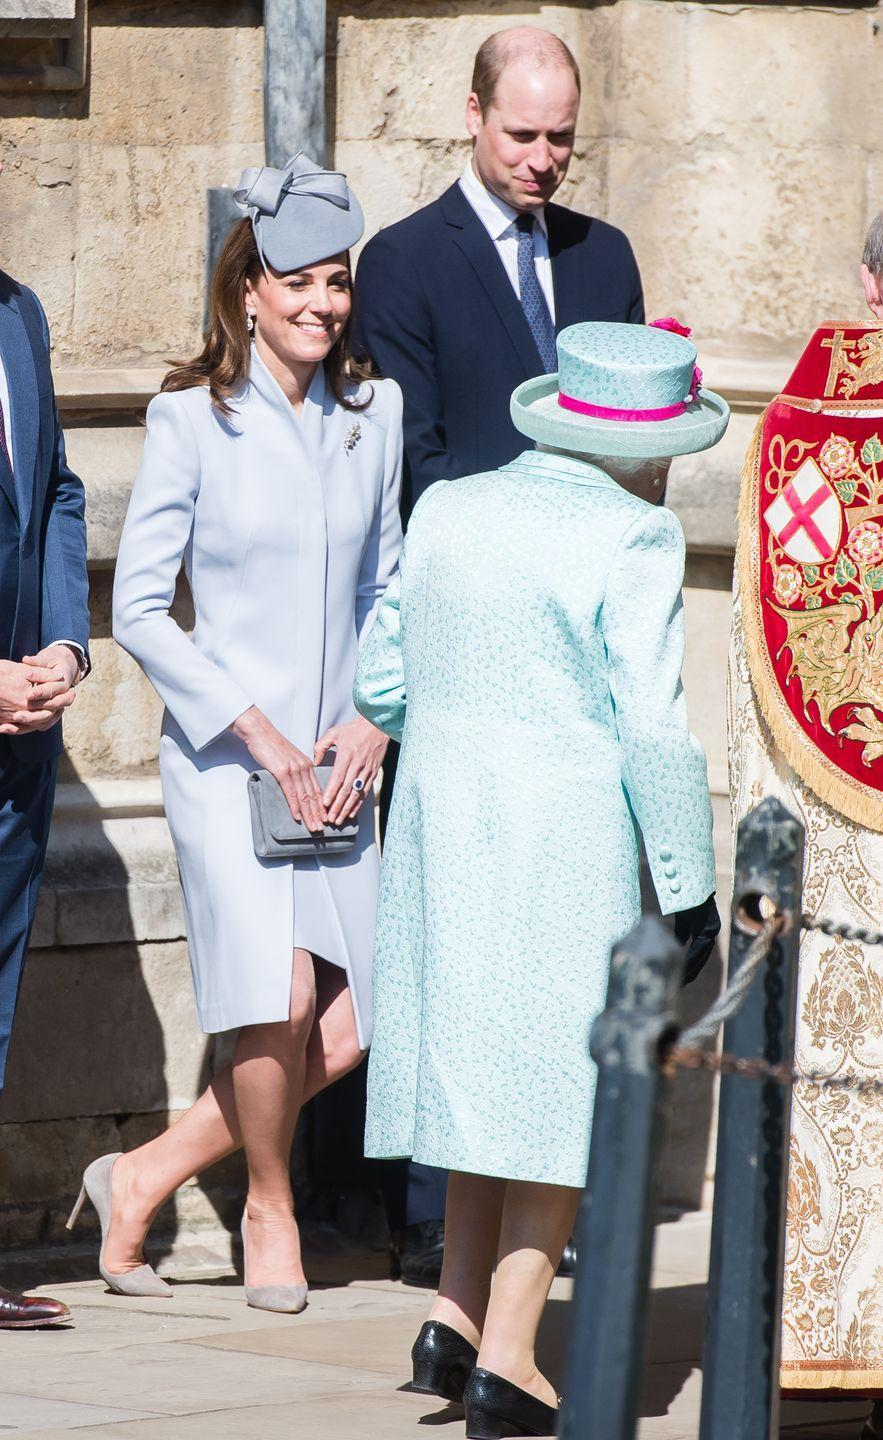 """<p>Even the Duchess of Cambridge has to curtsy to the Queen. This particular dip was <a href=""""https://www.townandcountrymag.com/society/tradition/g27131746/royal-family-easter-photos-2019/"""" rel=""""nofollow noopener"""" target=""""_blank"""" data-ylk=""""slk:caught on camera on Easter Sunday"""" class=""""link rapid-noclick-resp"""">caught on camera on Easter Sunday</a>.</p>"""